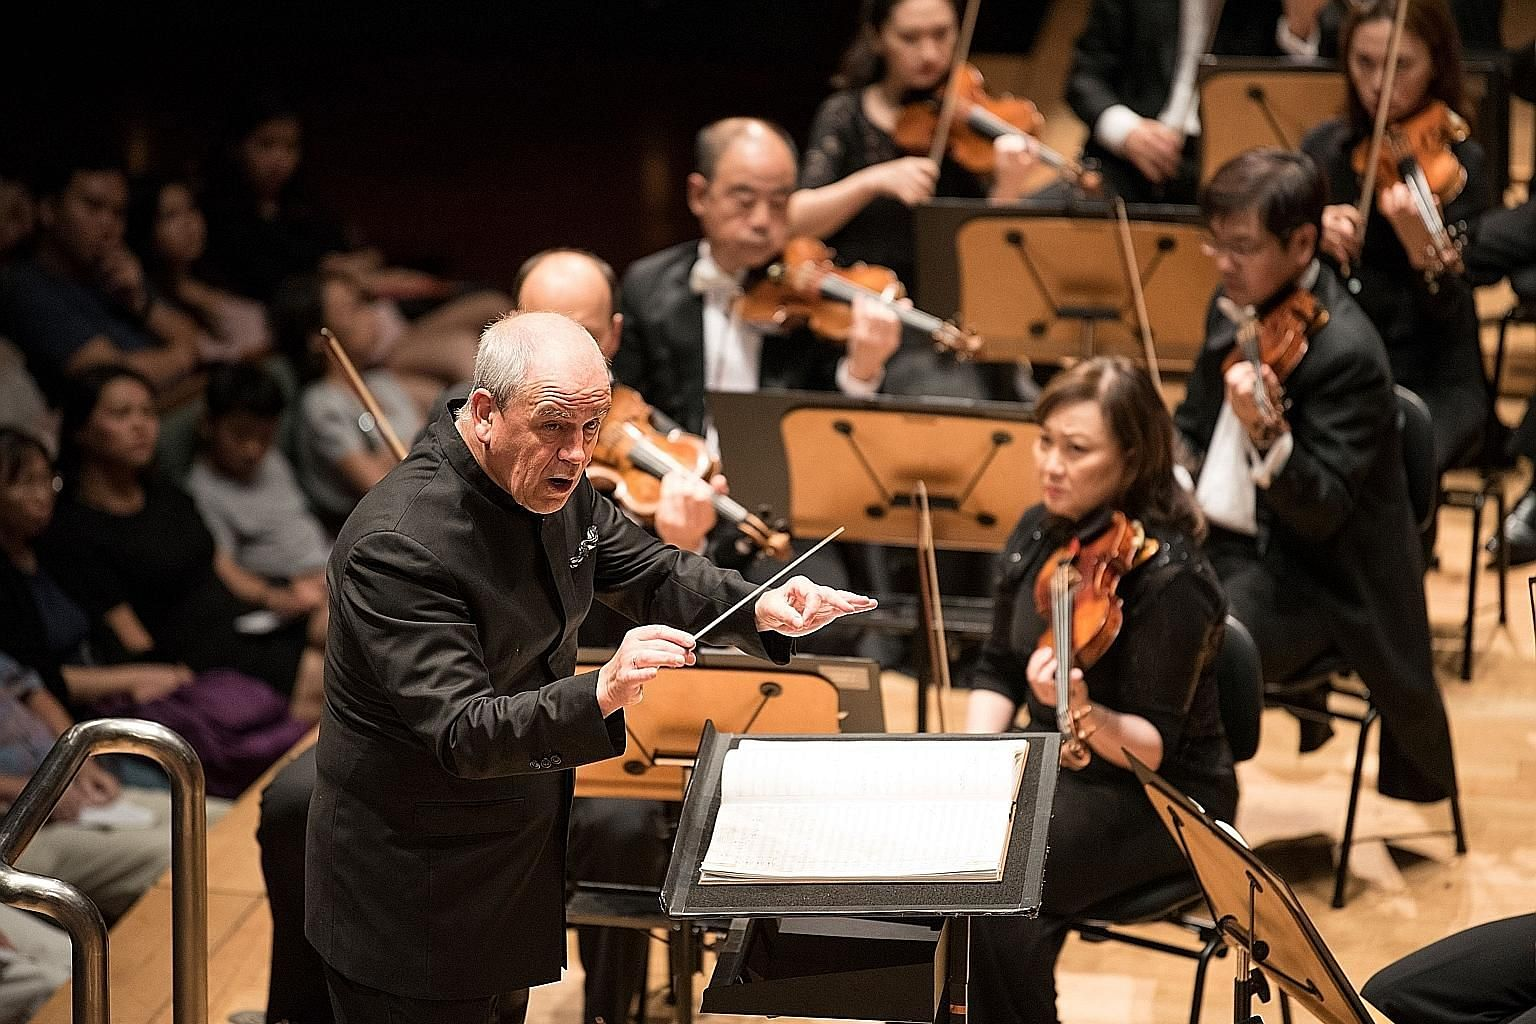 Hans Graf was music director of the Houston Symphony Orchestra from 2001 to 2013 and holds the title of Conductor Laureate.